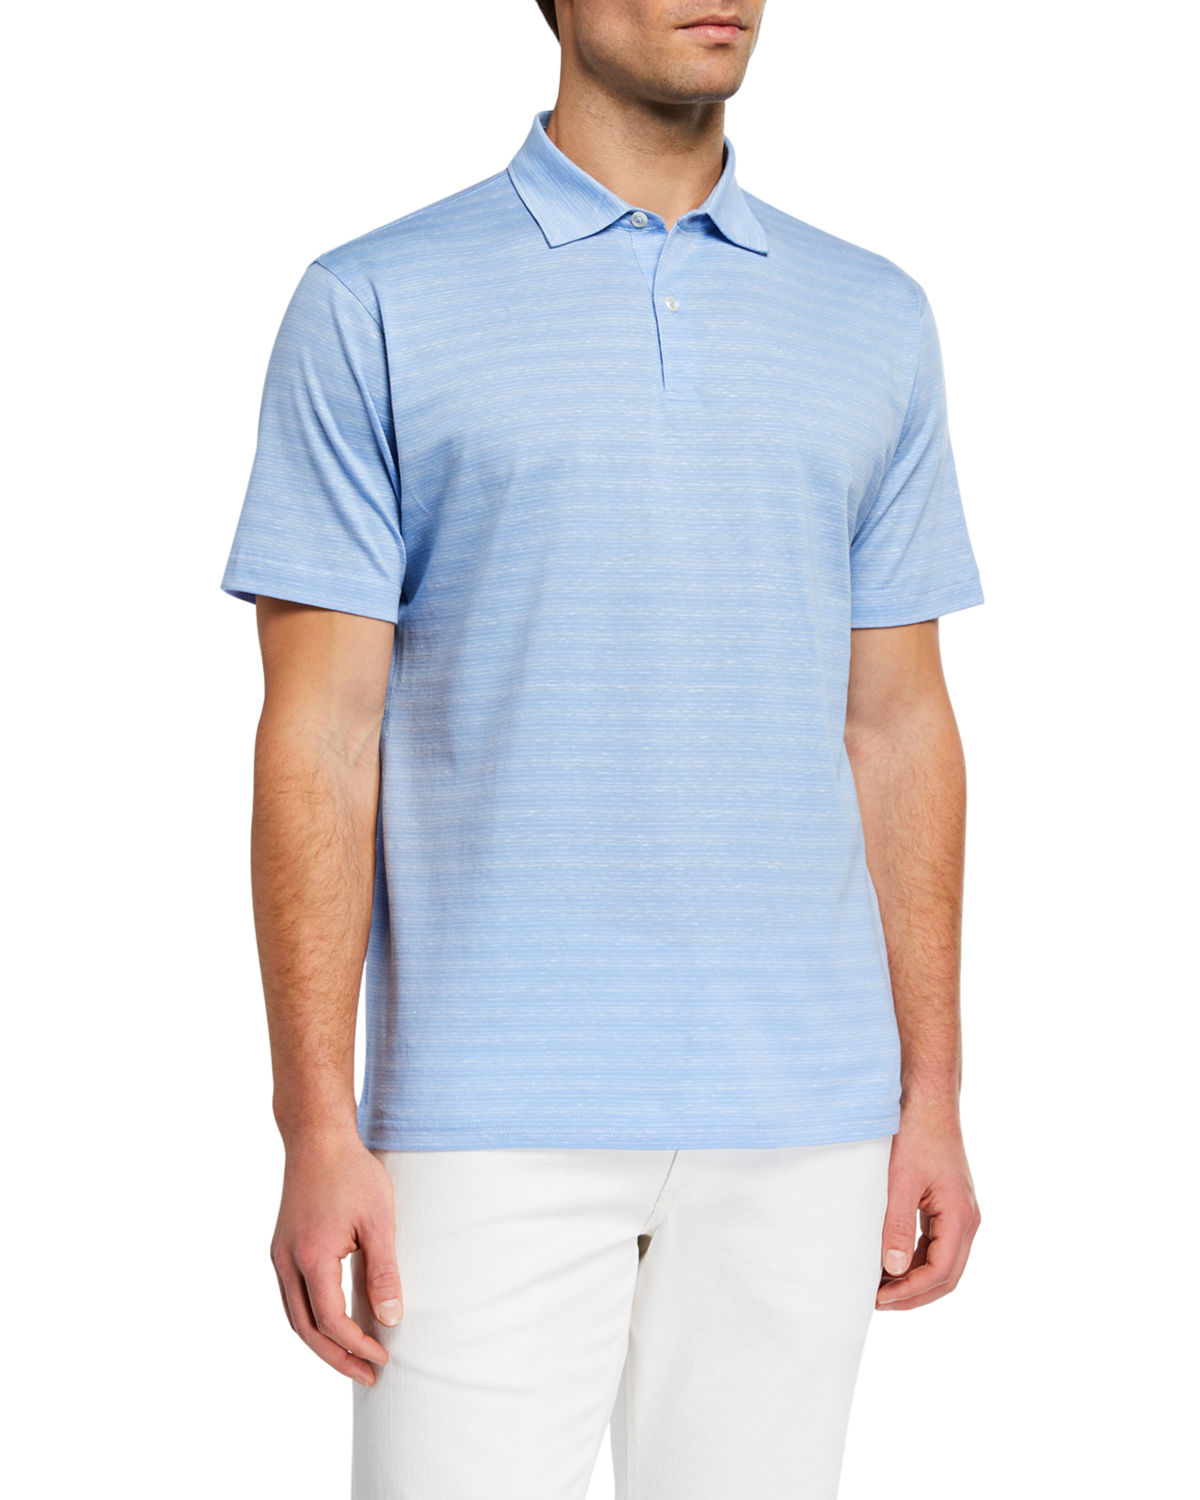 Peter Millar T-shirts MEN'S VINTAGE COAST LINEN-BLEND POLO SHIRT